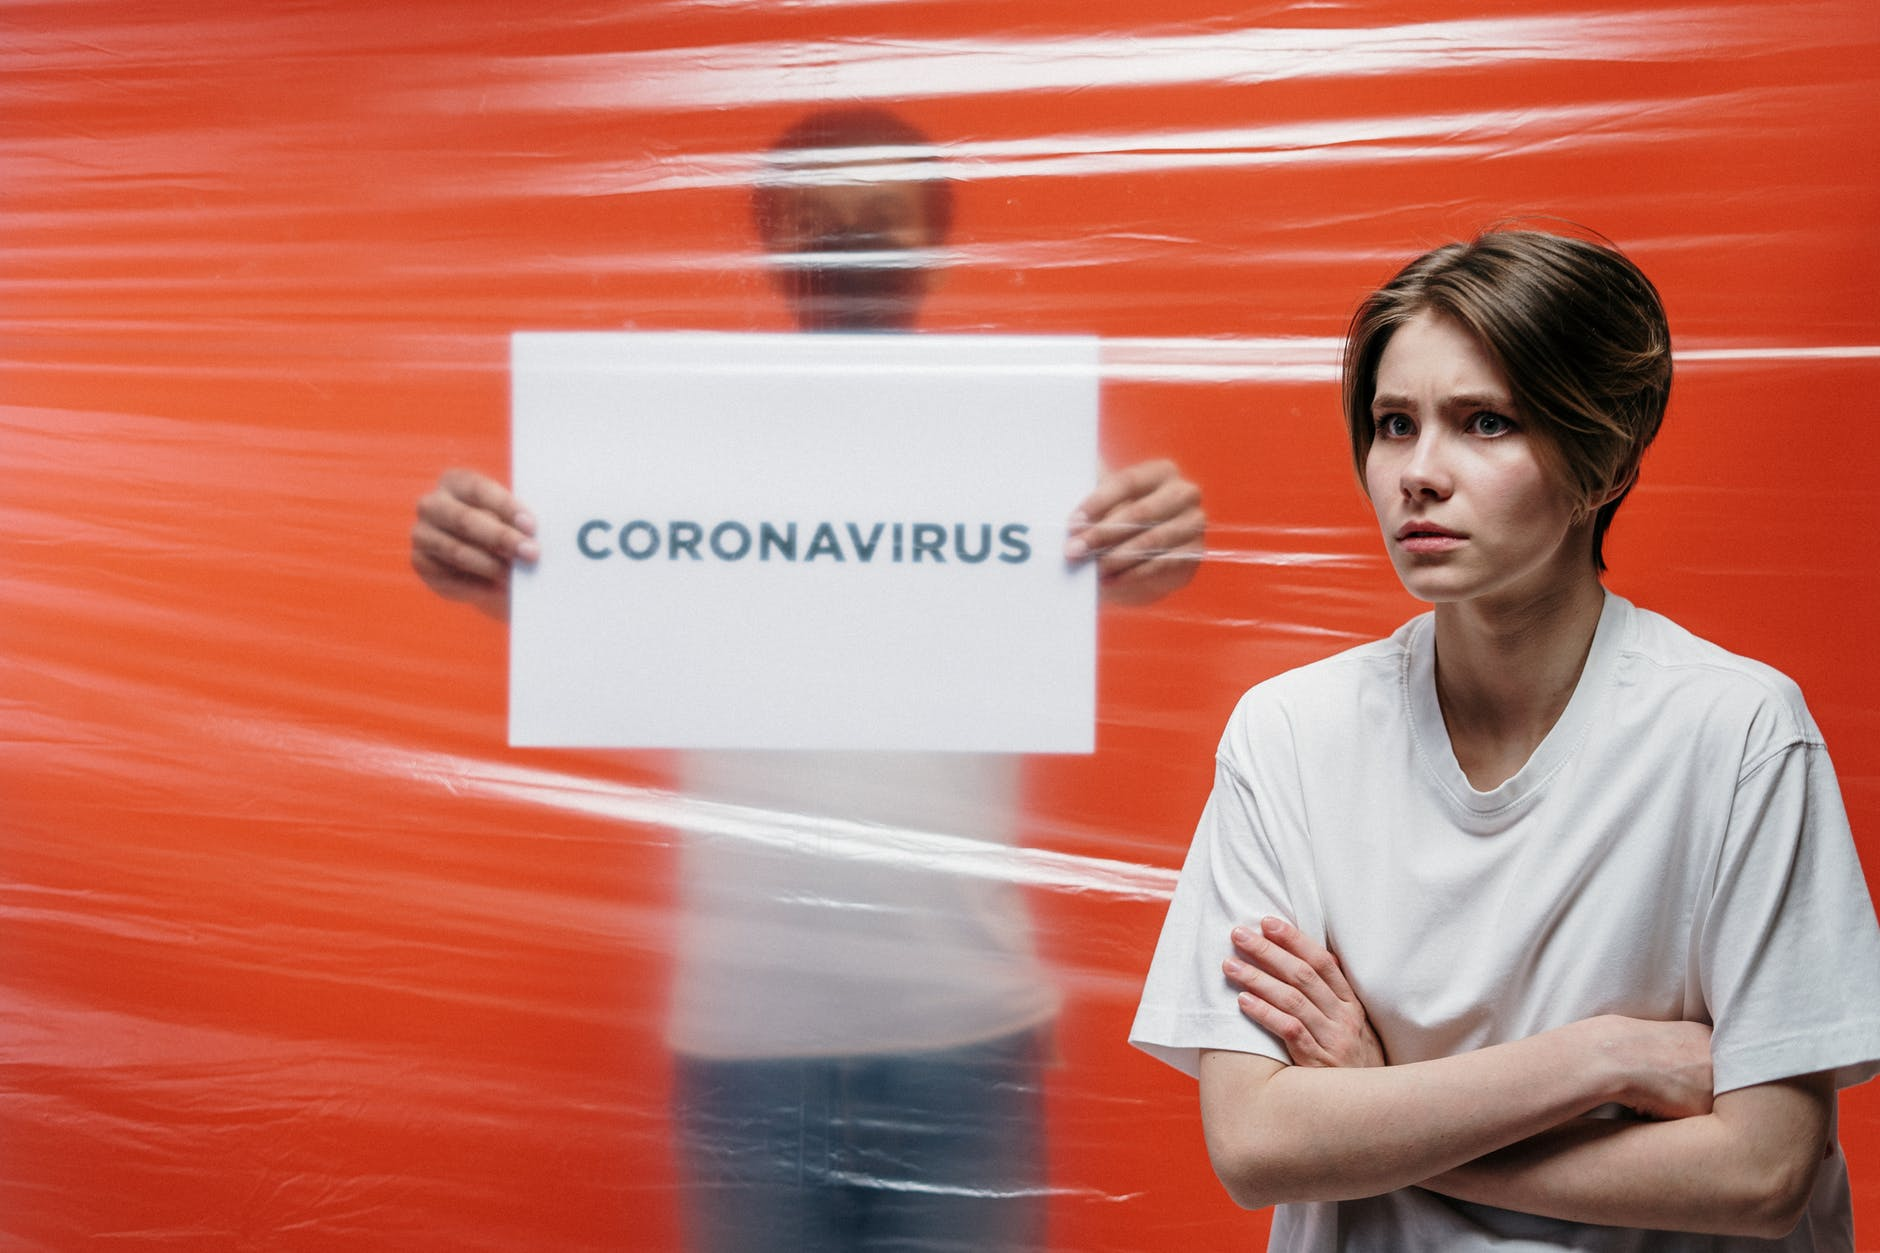 Mental Health and CoronaVirus